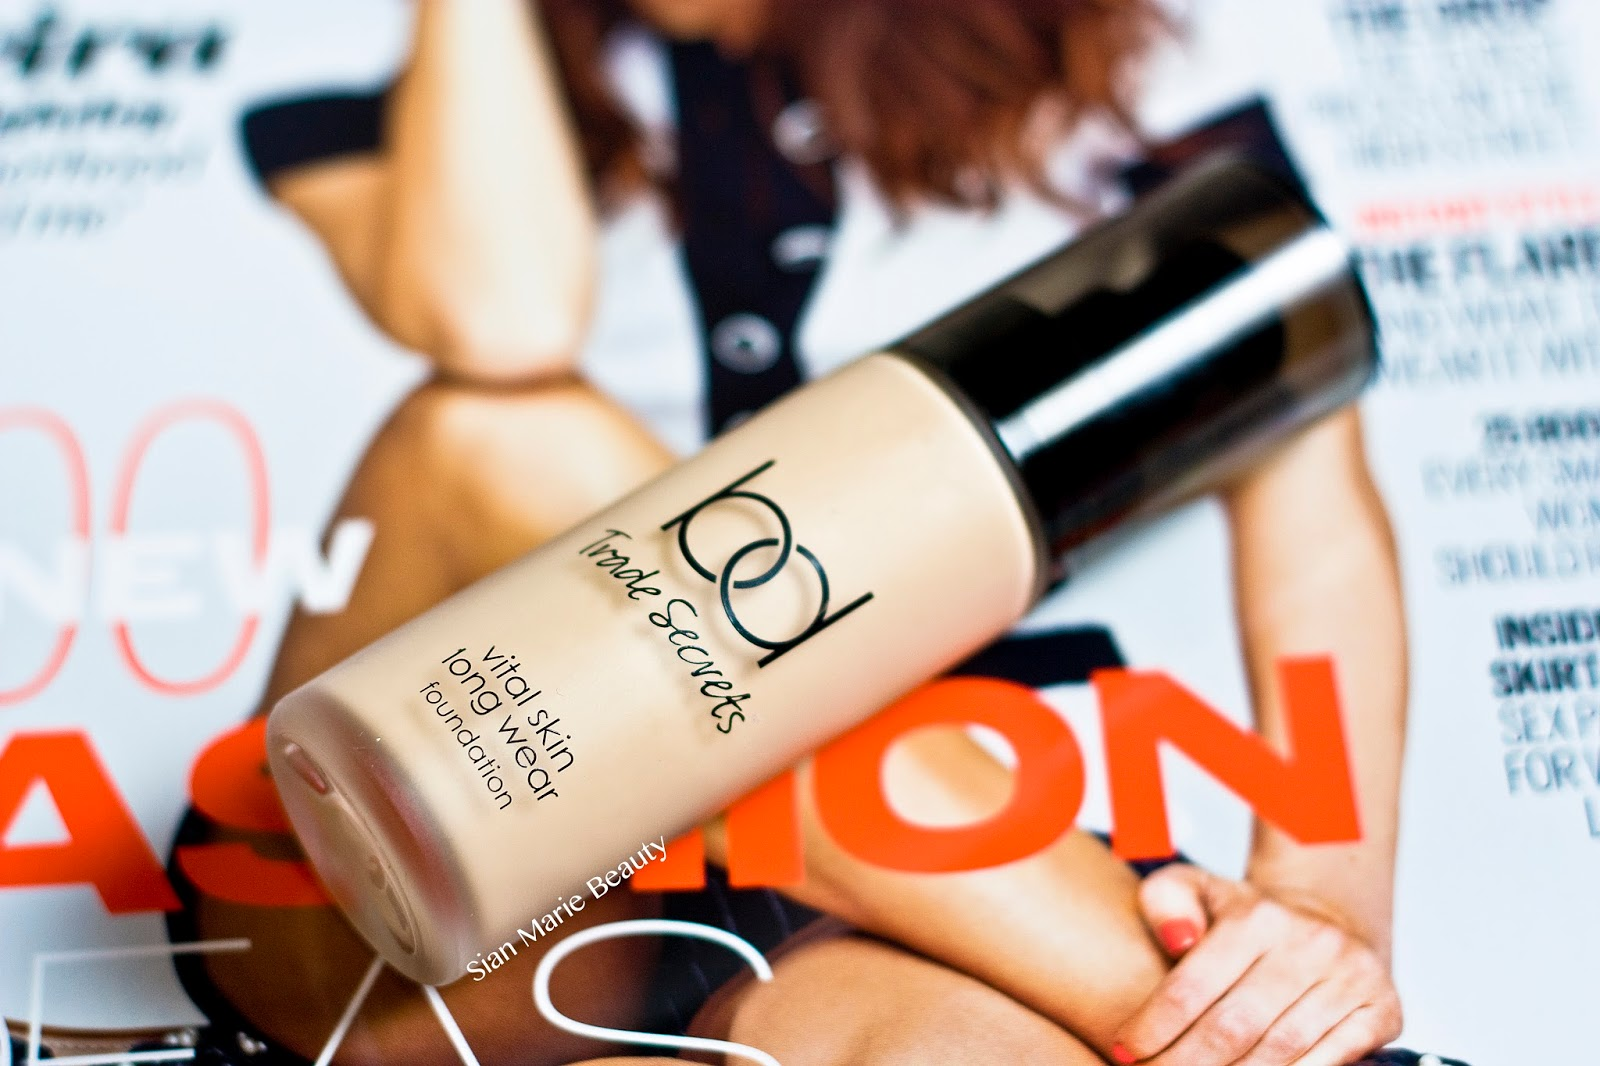 Barbra Daly BD Trade Secrets Review on Sian Marie Beauty